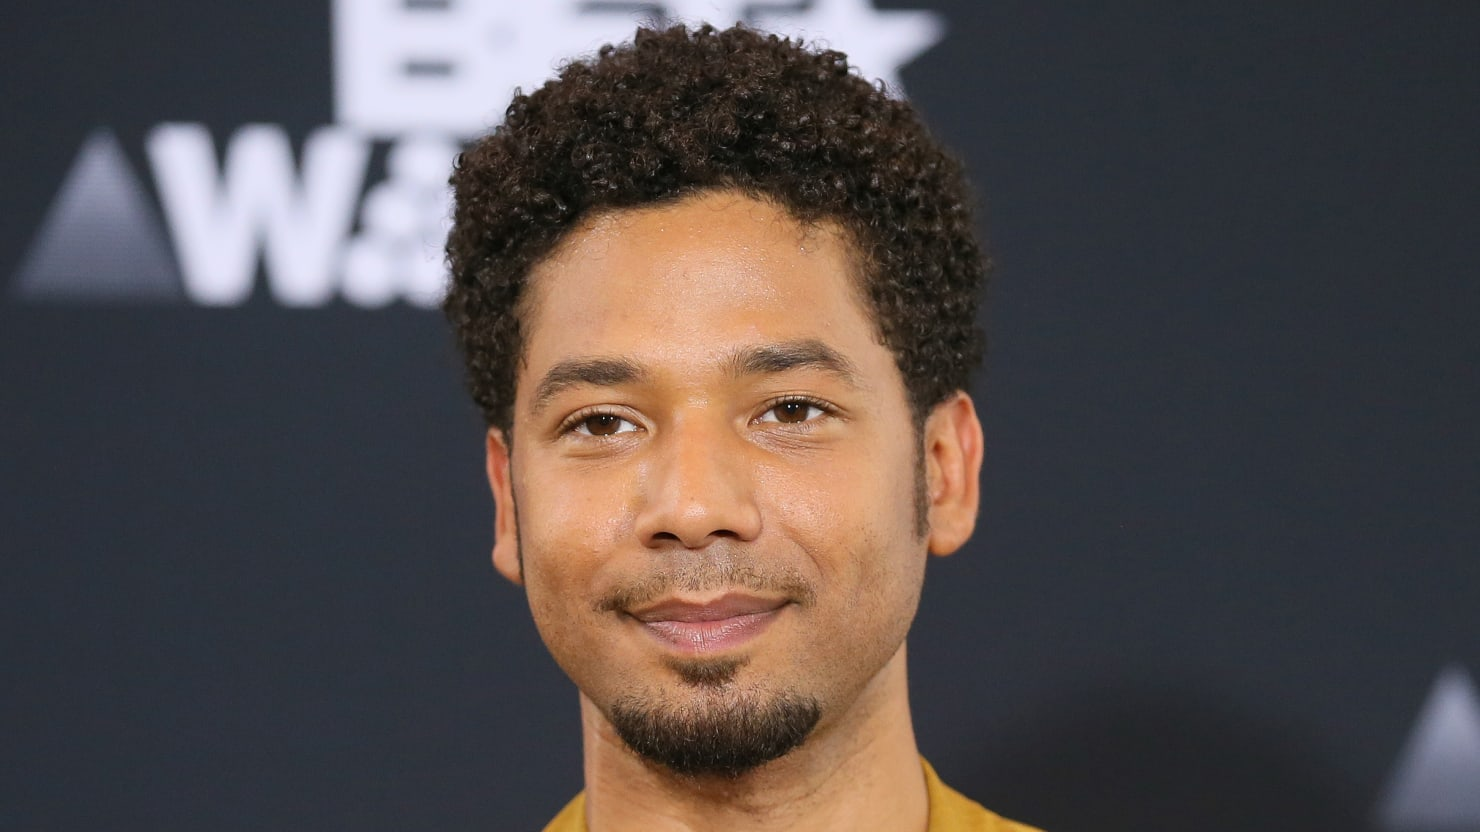 Jussie Smollett Apologizes to 'Empire' Cast—But Insists He's Innocent